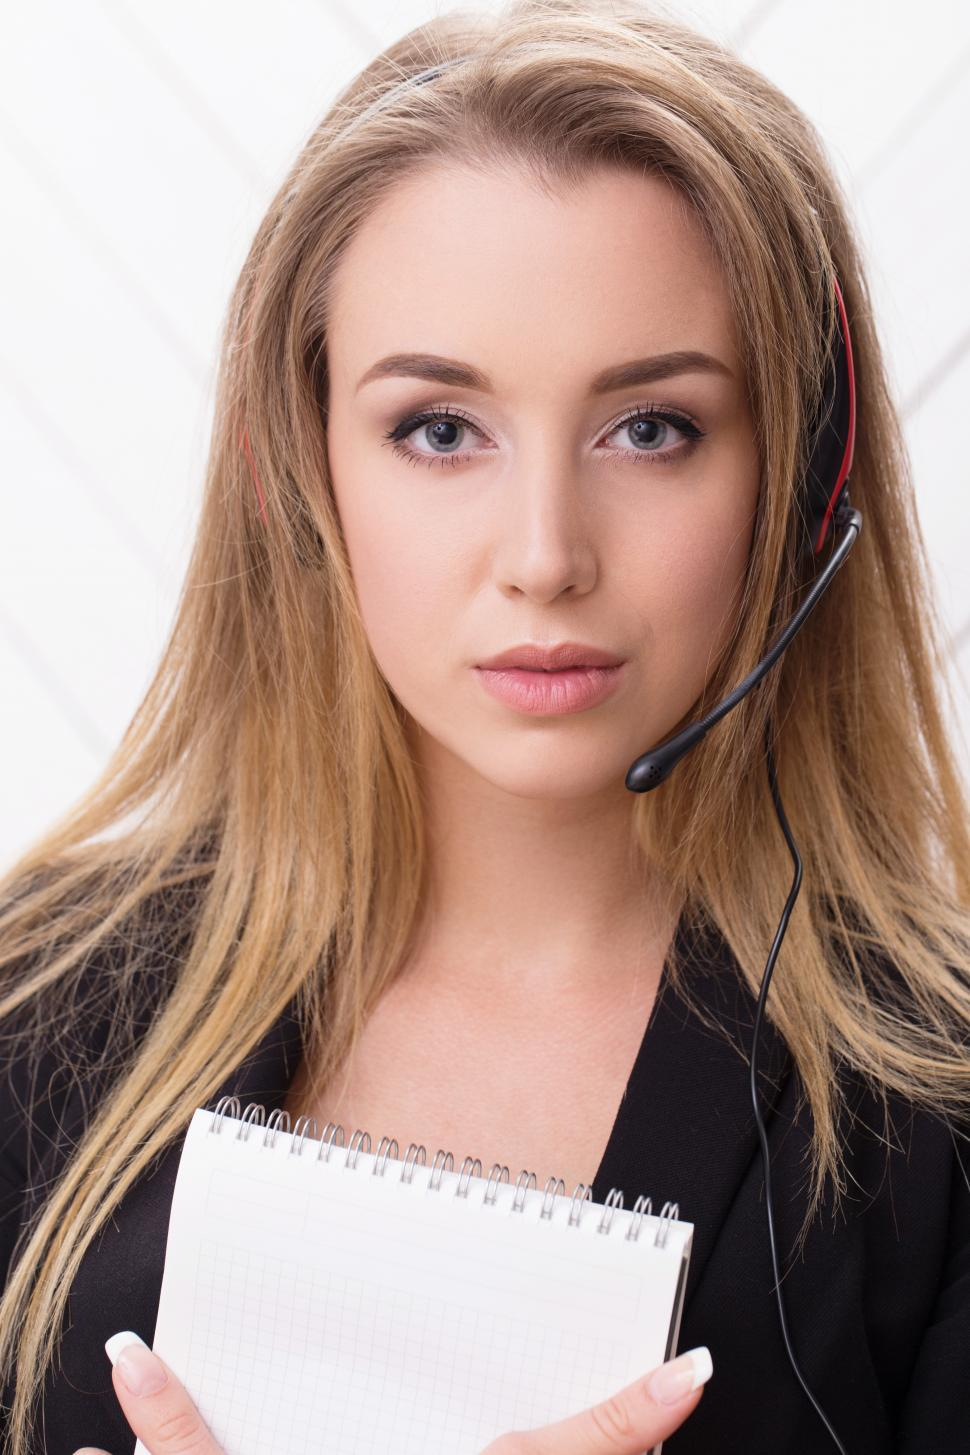 Download Free Stock Photo of Woman with a headset